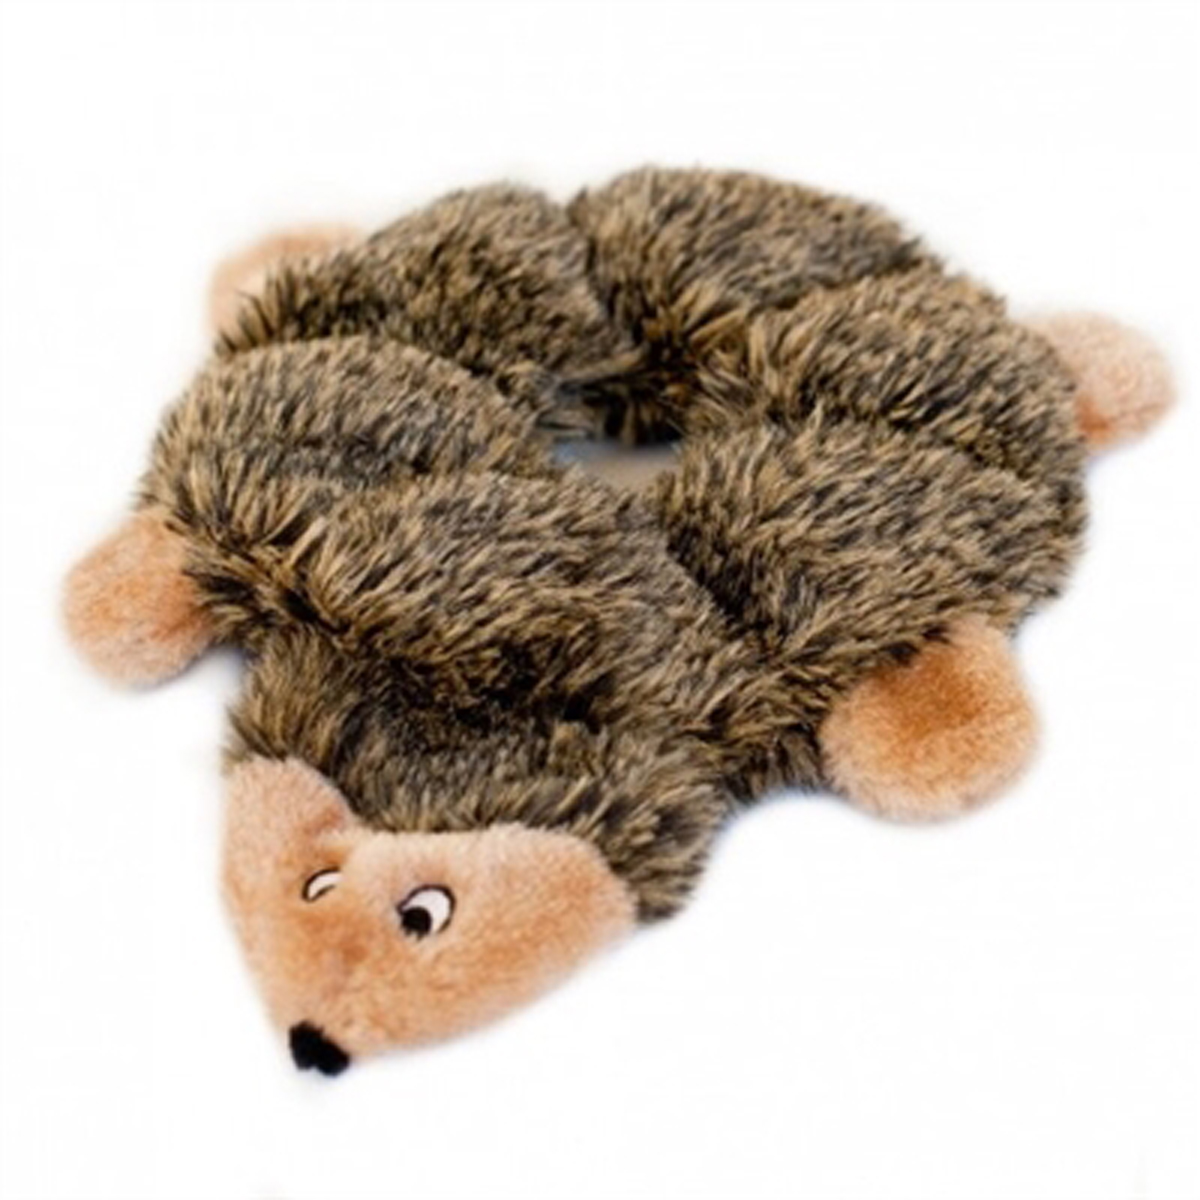 Loopy Hedgehog Dog Toy